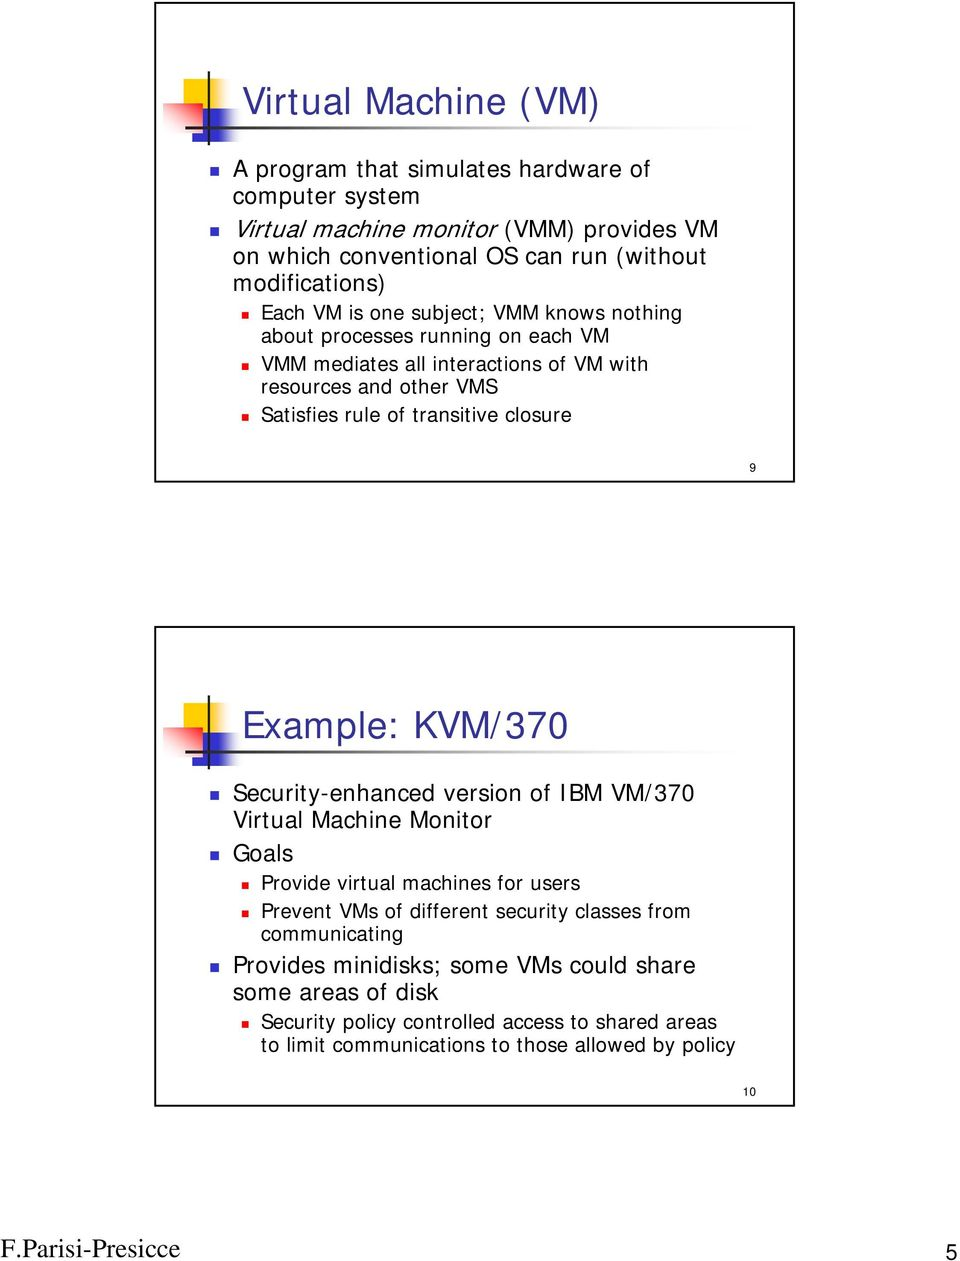 closure 9 Example: KVM/370 Security-enhanced version of IBM VM/370 Virtual Machine Monitor Goals Provide virtual machines for users Prevent VMs of different security classes